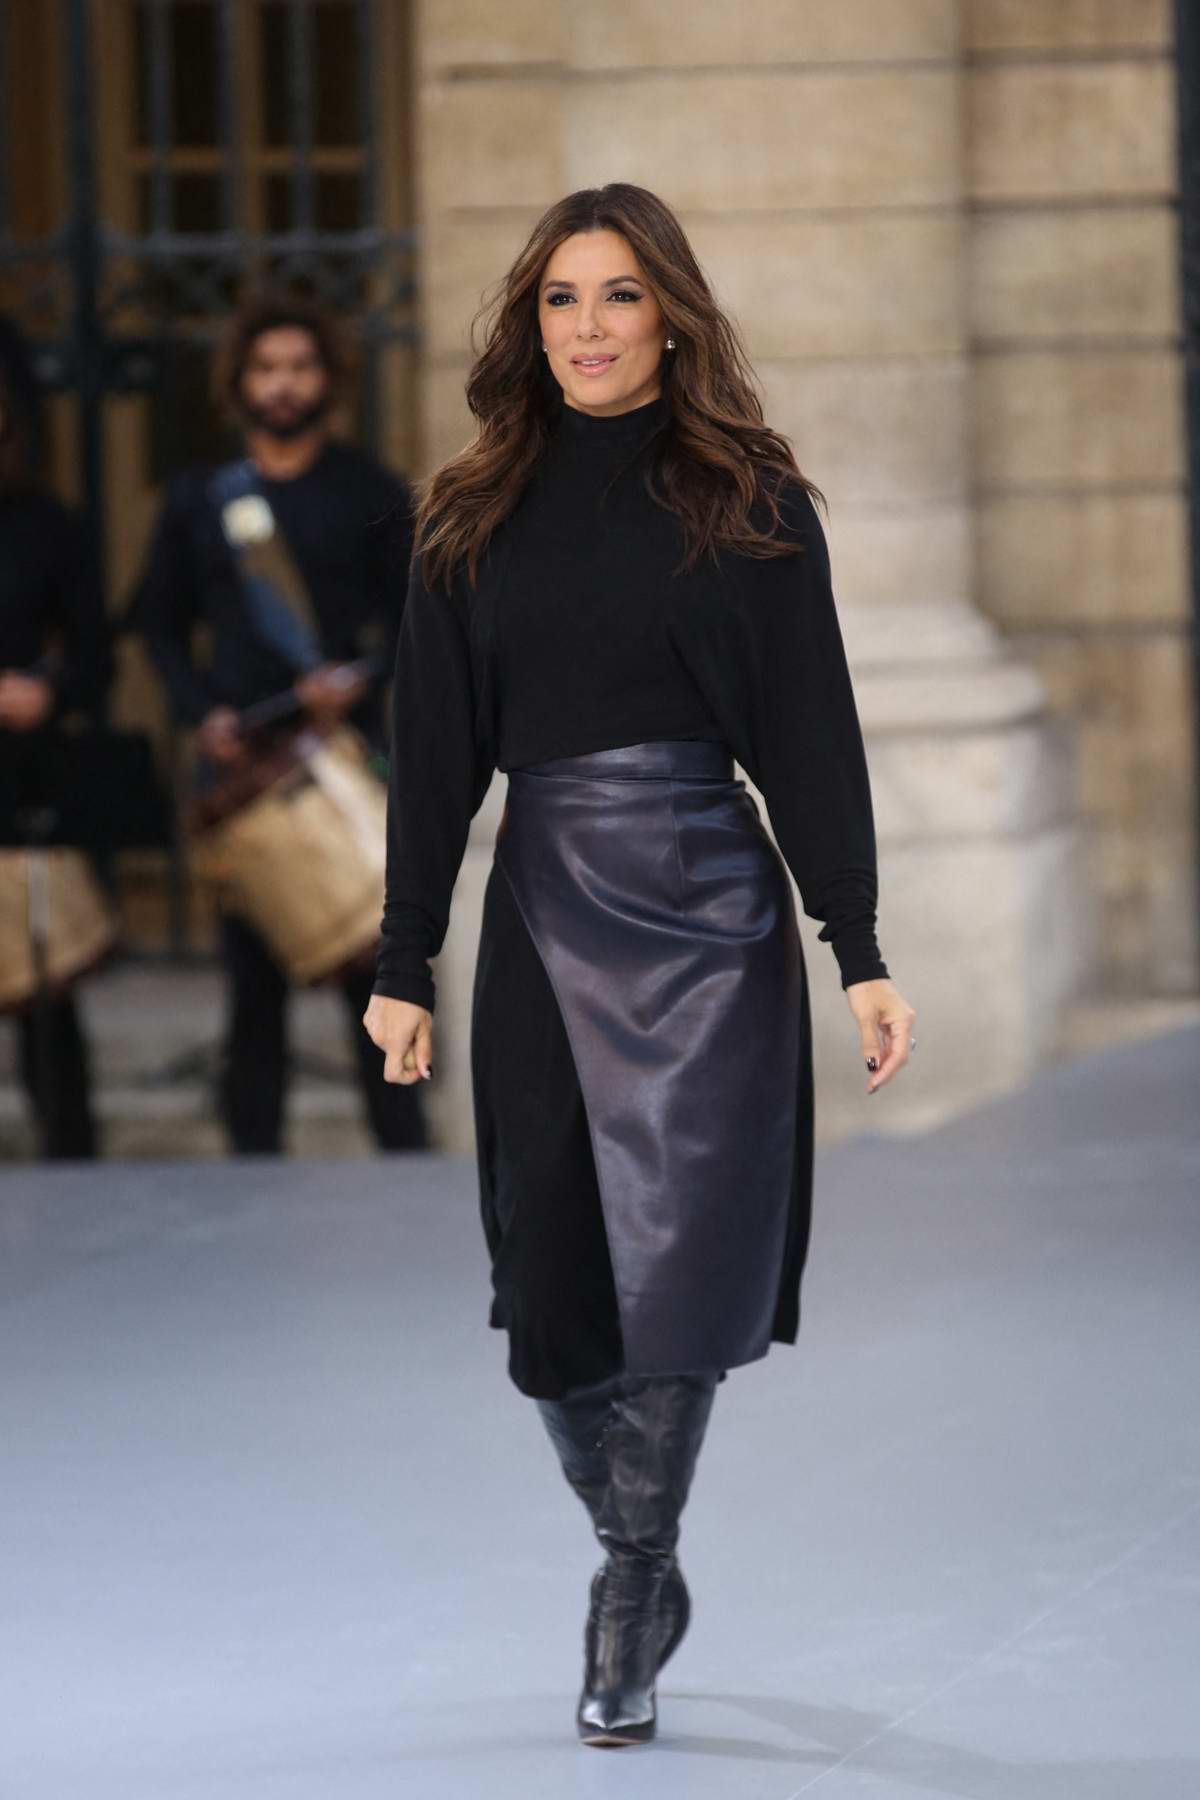 Eva Longoria walks the runway at the L'Oreal Paris Spring/Summer 2020 show during Paris Fashion Week in Paris, France